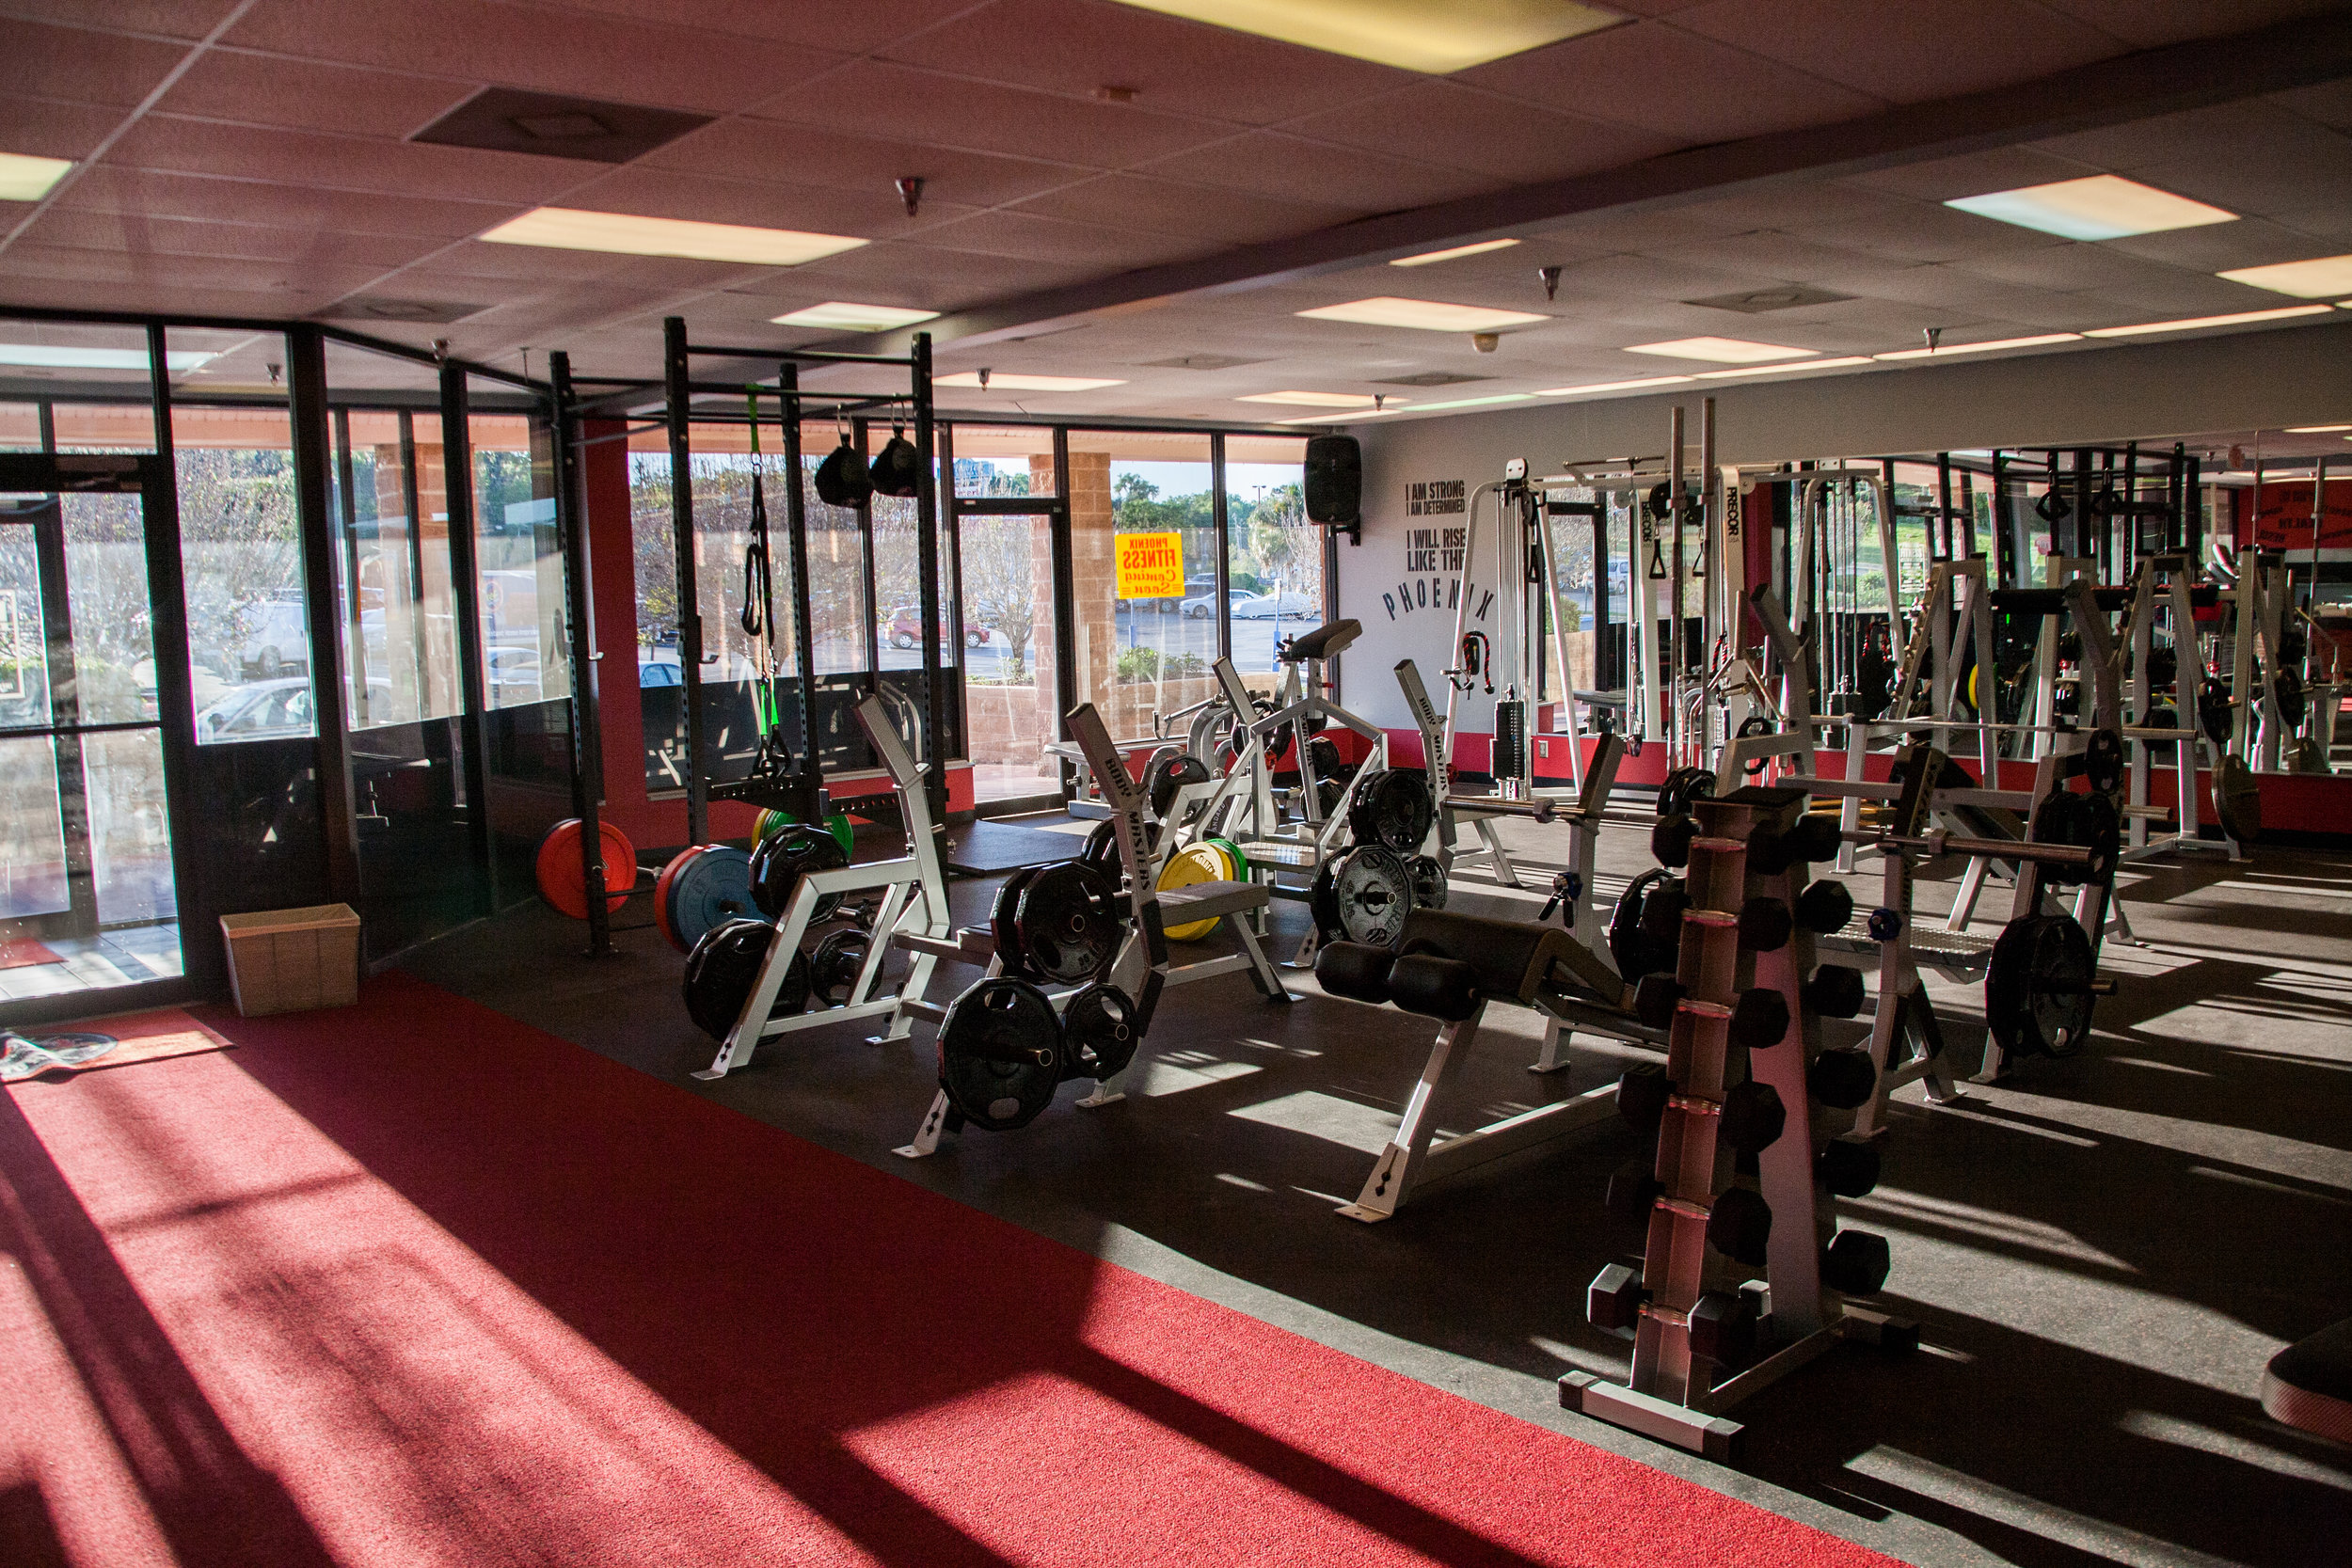 A CLEAN, WELL LIT FACILITY FILLED WITH   high quality equipment    check it out